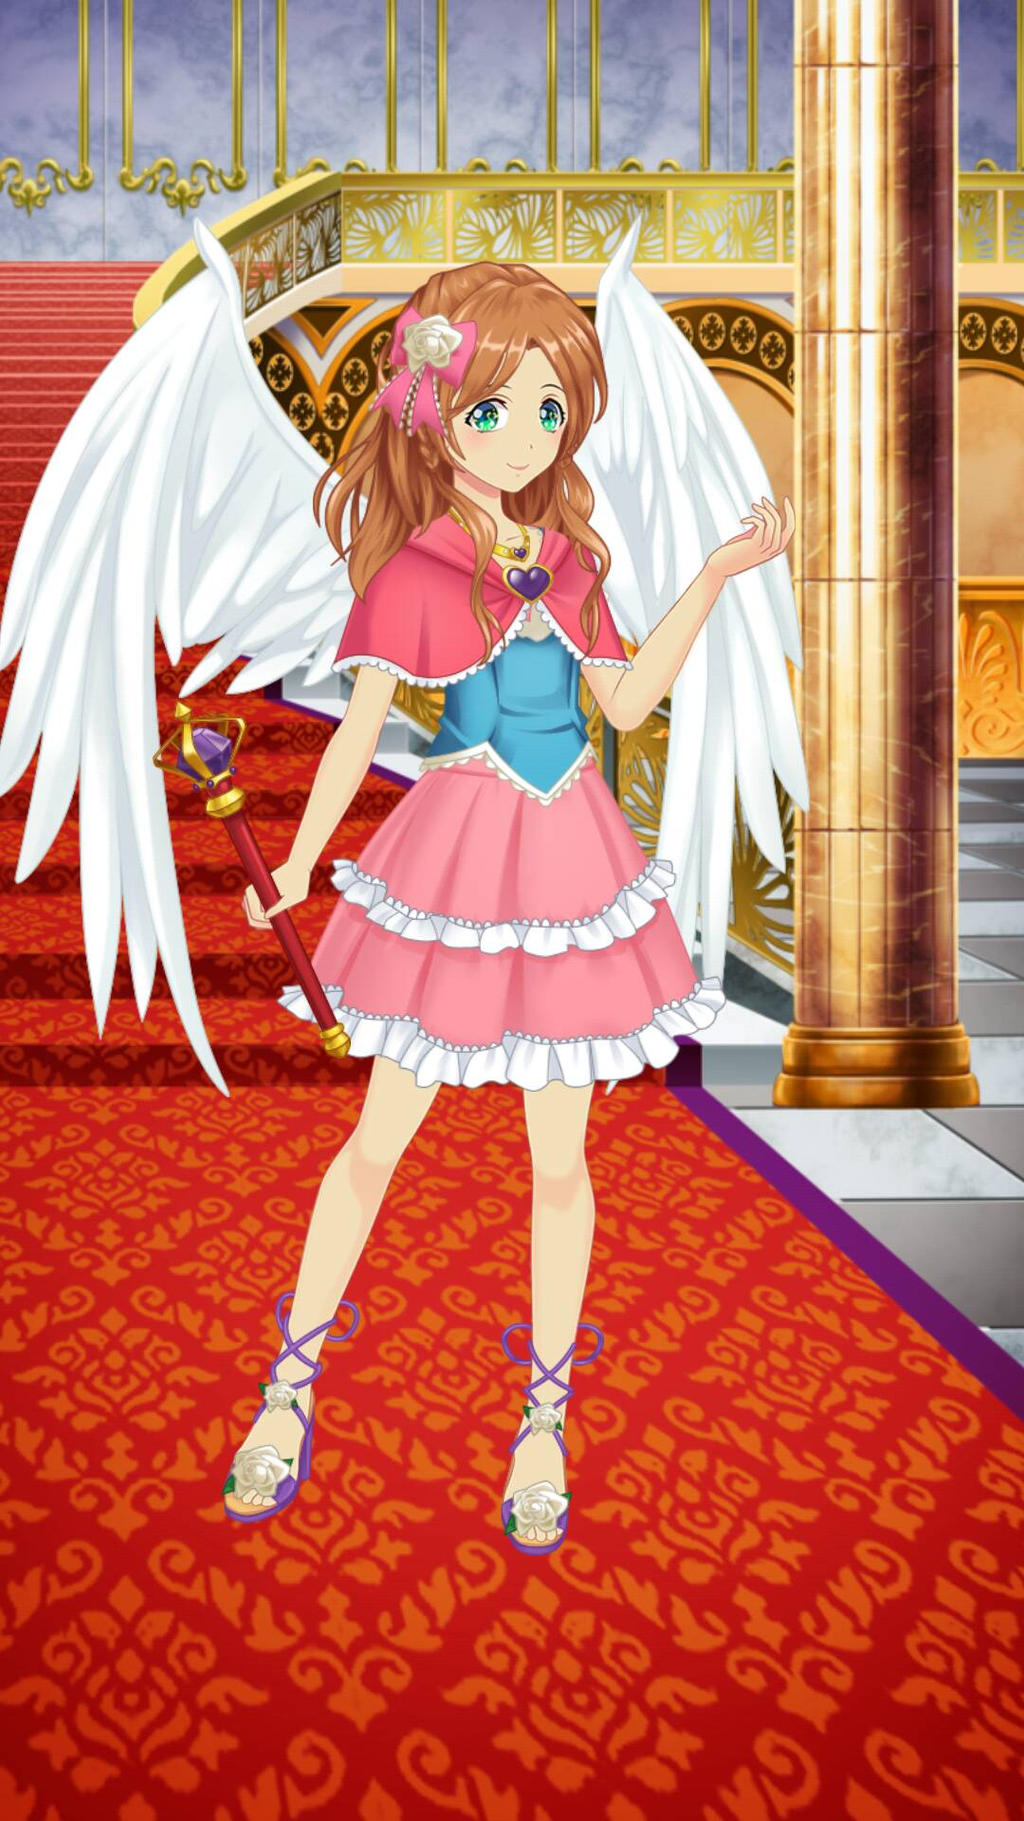 Anime Dress Up: Princess Katy Gladison by PrettyMelodyRhythm on